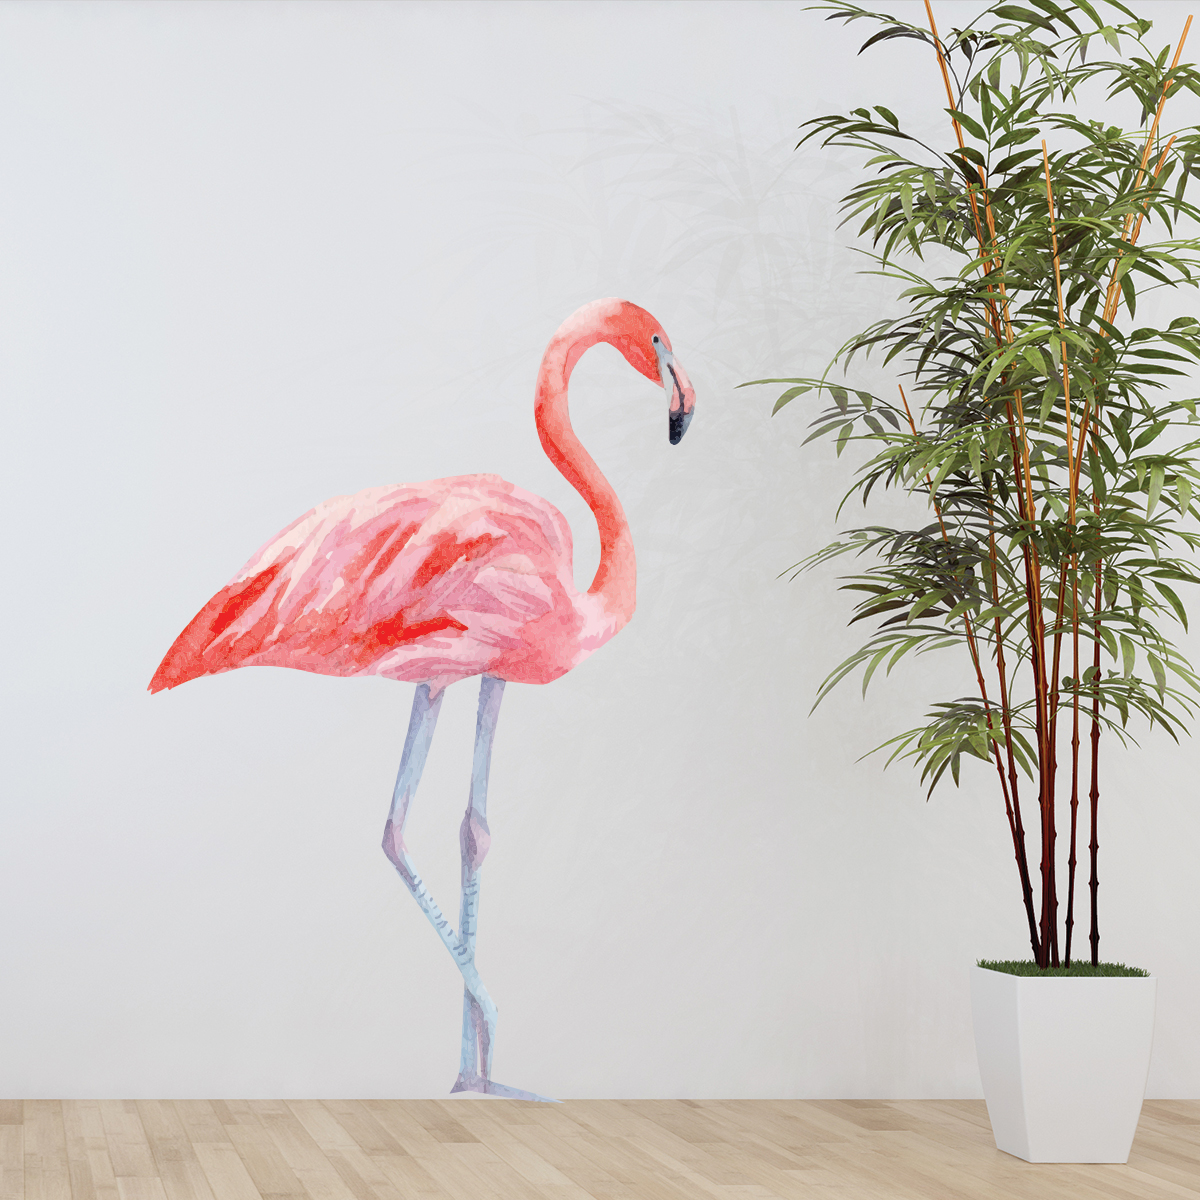 Sticker flamant rose stickers animaux oiseaux ambiance - Stickers flamant rose ...